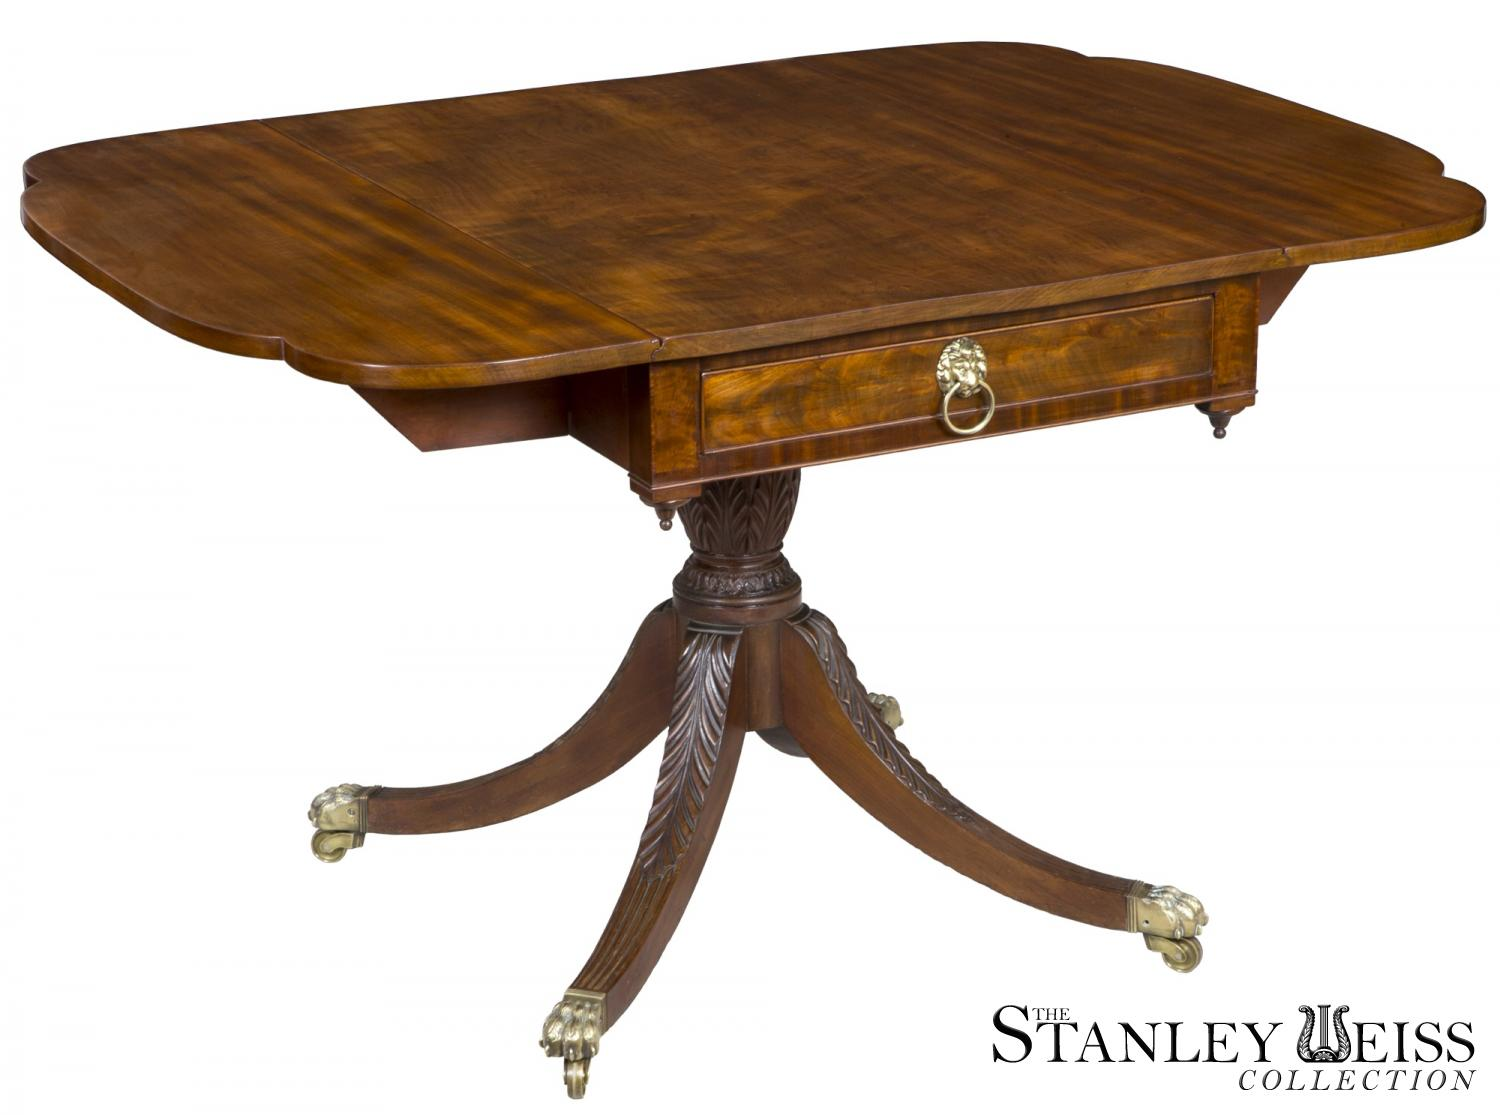 A Fine Mahogany Classical Drop Leaf Table, Duncan Phyfe Or Contemporary Of  Equal Rank, New York, C.1810 20